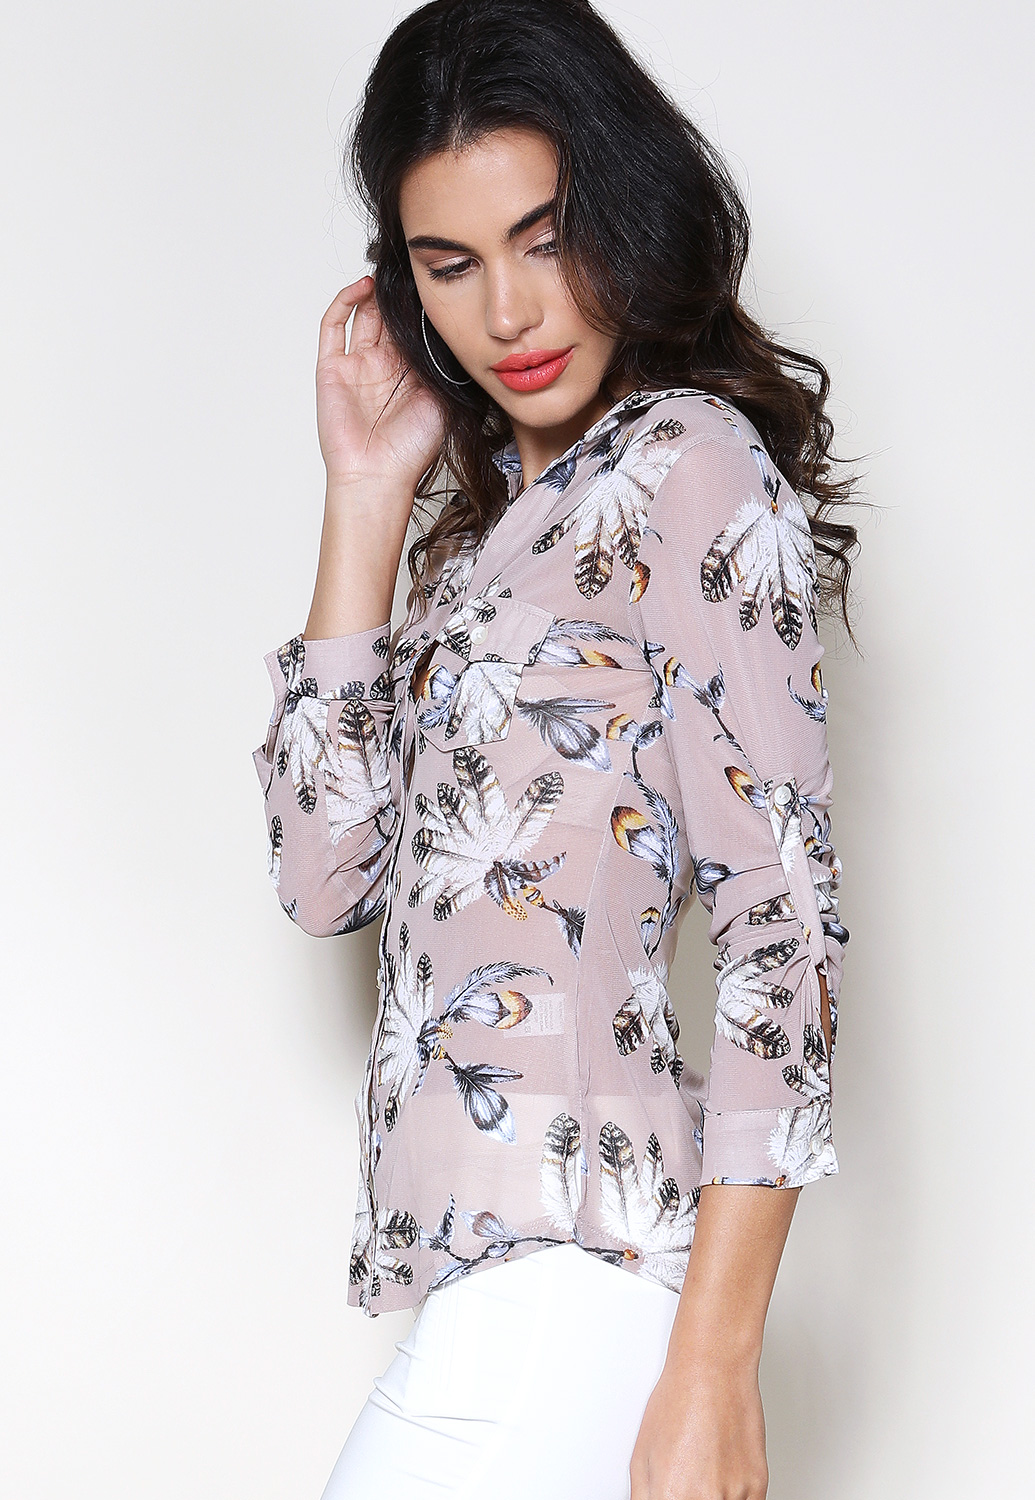 Sheer Mesh Feather Print Top